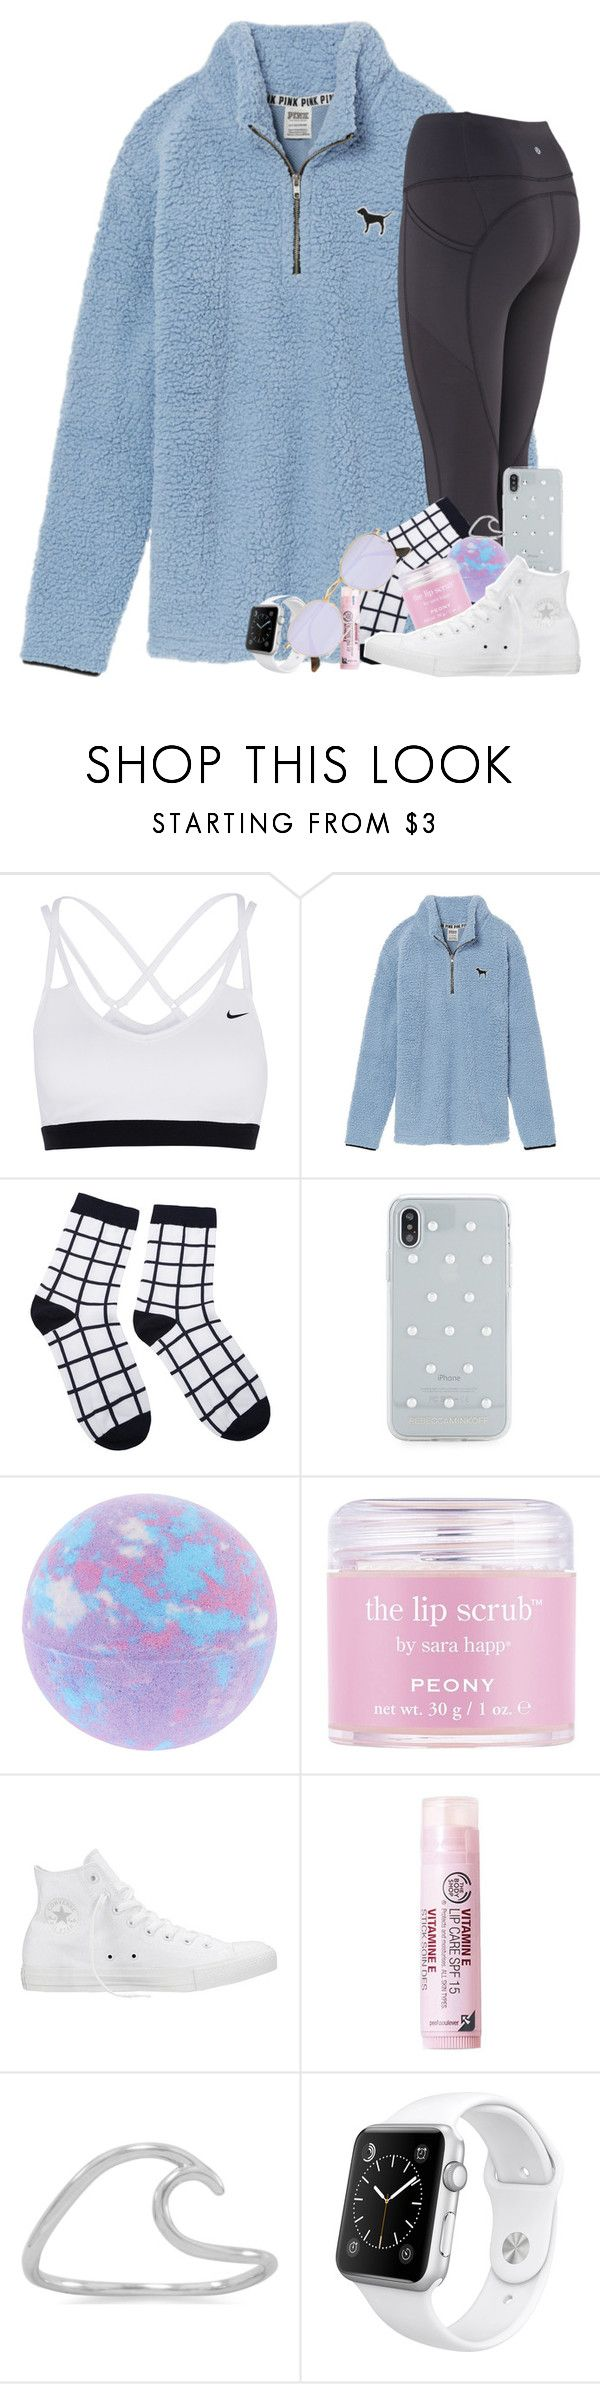 """"" by southernstruttin ❤ liked on Polyvore featuring NIKE, Victoria's Secret, Rebecca Minkoff, Sara Happ, Converse, The Body Shop, BillyTheTree, Apple and Ray-Ban"